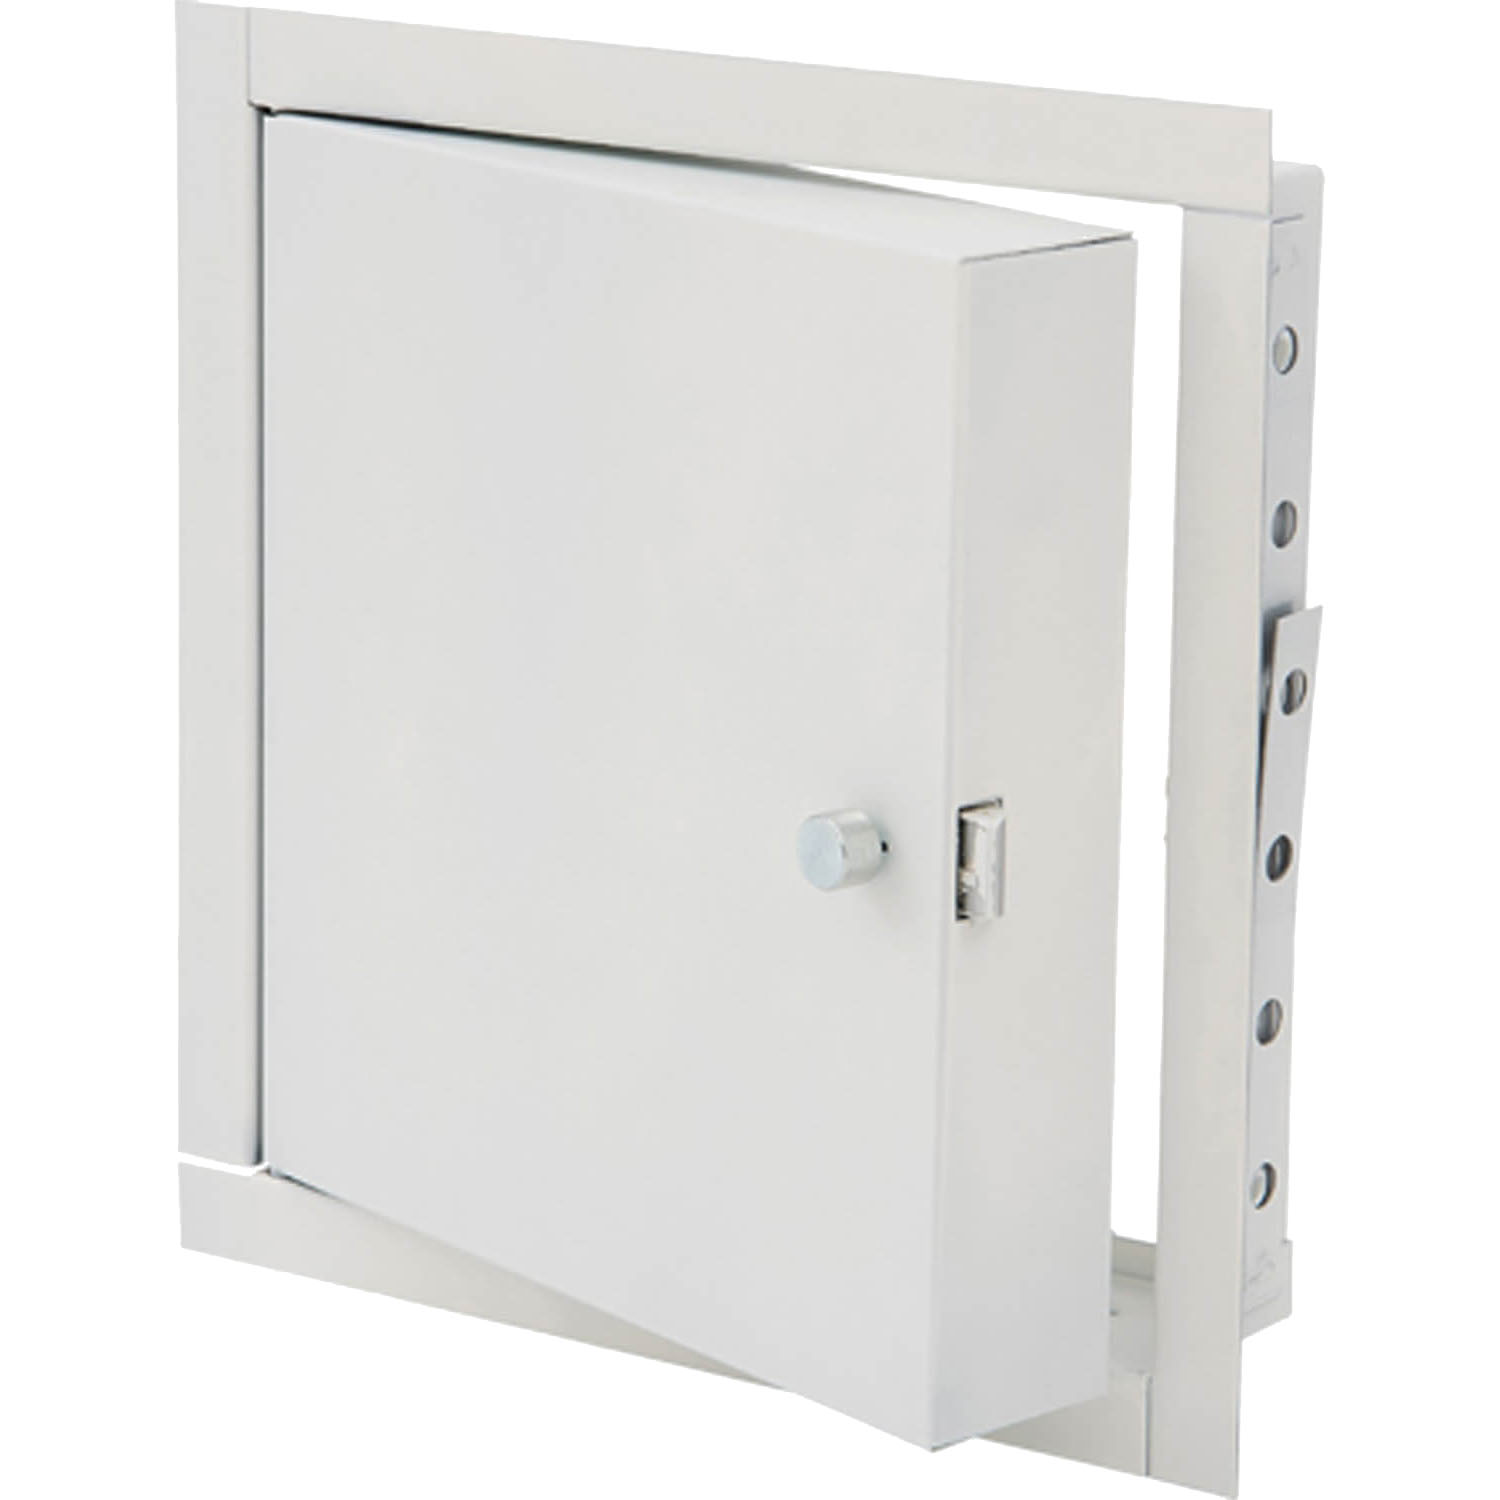 "Access Door - E-FRC 12"" x 12"" Insulated Fire Rated"